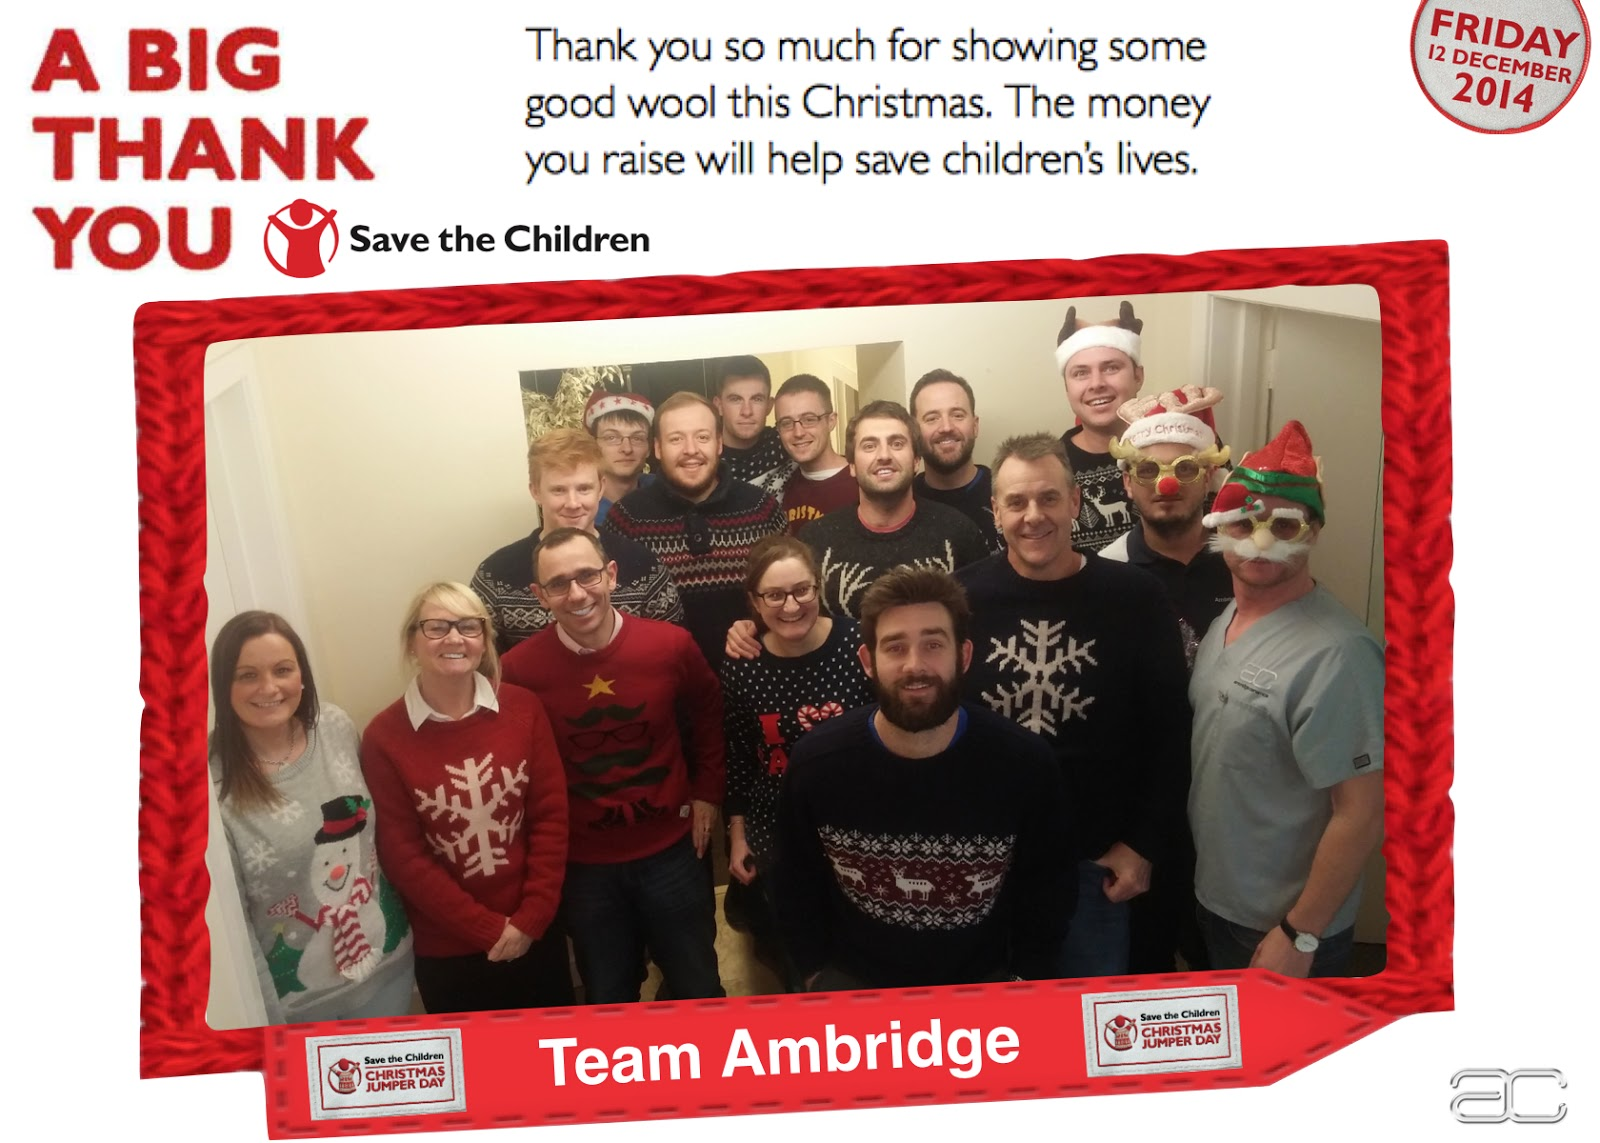 Ambridge Ceramics Christmas Jumper Day Thank You 2014